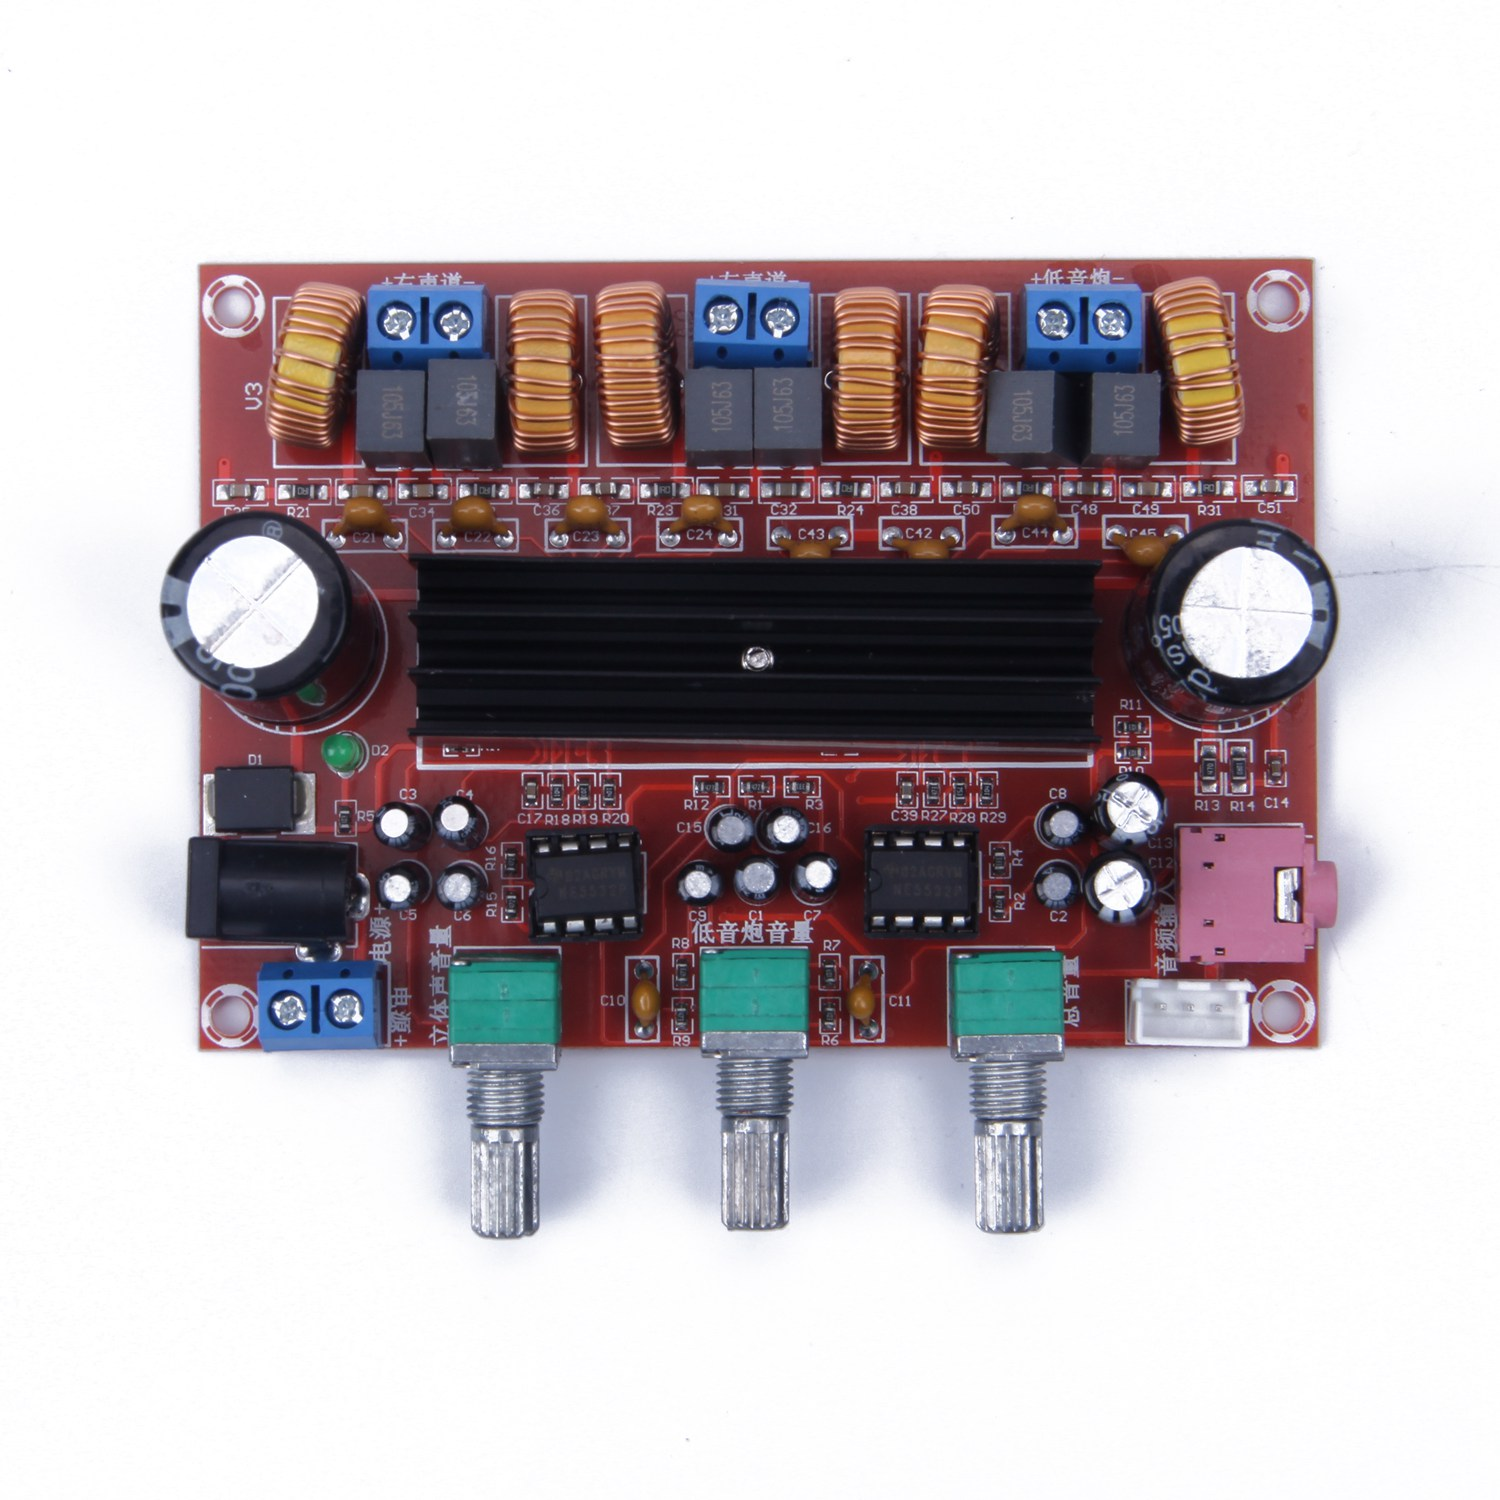 JABS <font><b>Amplifier</b></font> <font><b>Board</b></font> <font><b>TPA3116D2</b></font> <font><b>50Wx2</b></font>+<font><b>100W</b></font> <font><b>2.1</b></font> Channel Digital Subwoofer Power 12~24V image